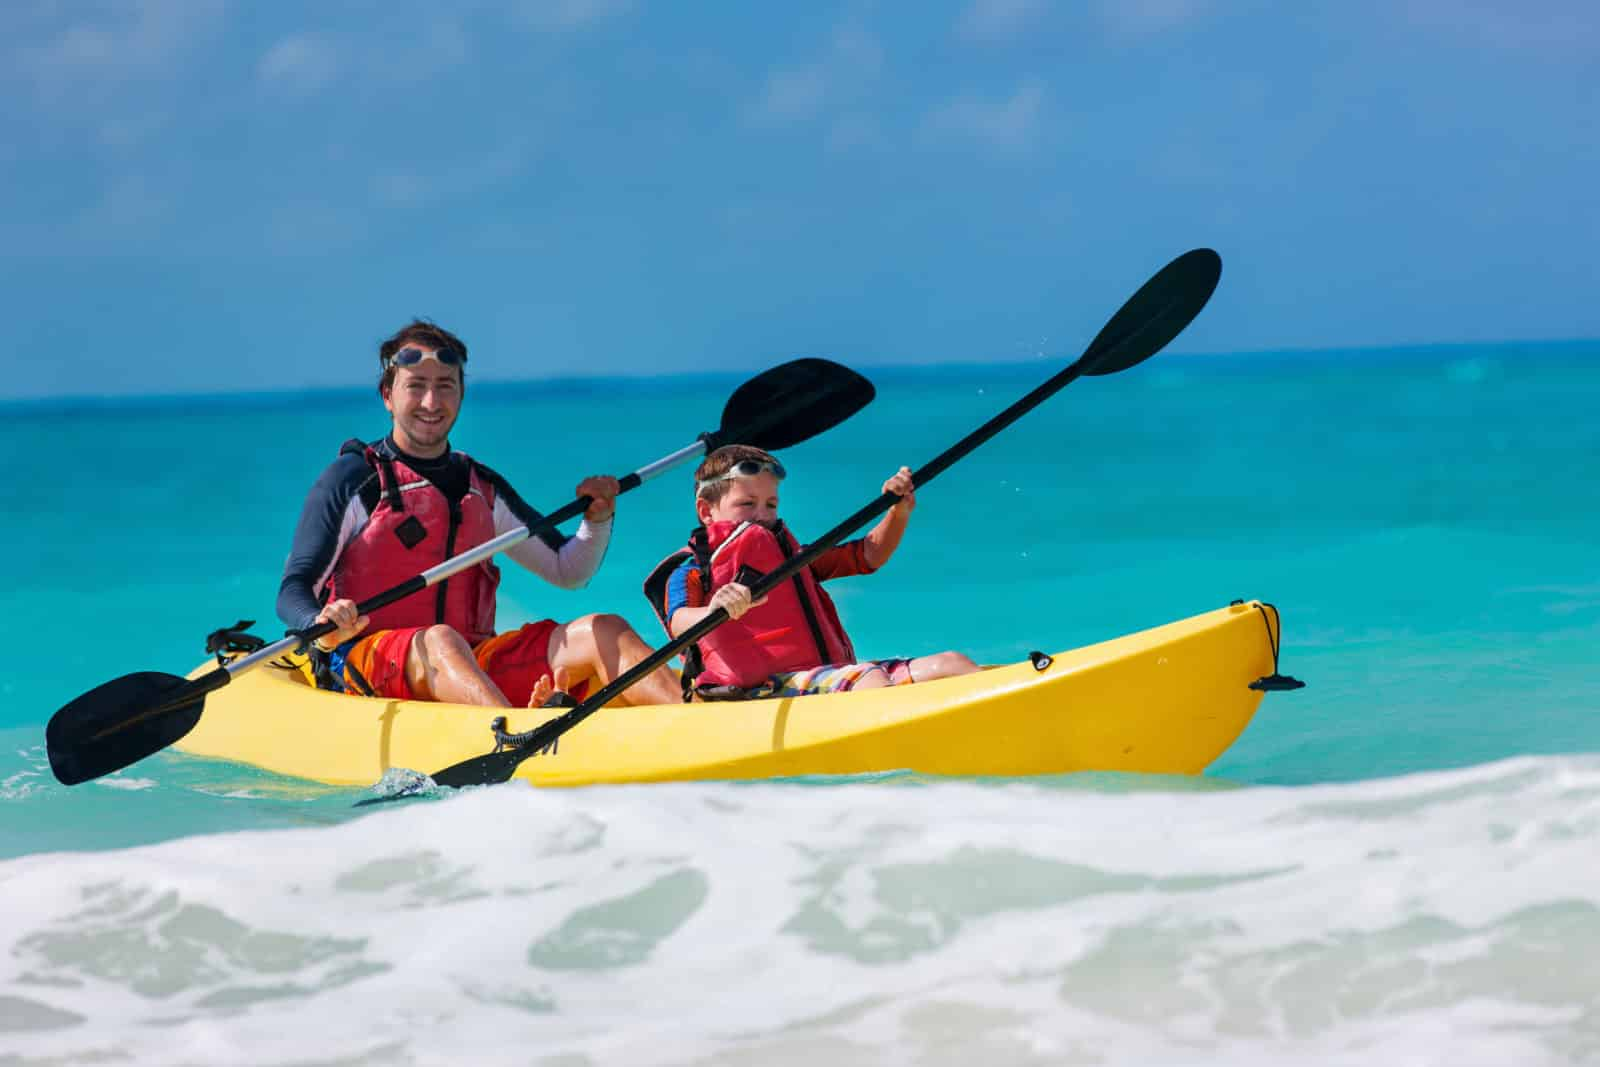 father and son kayaking on ocean